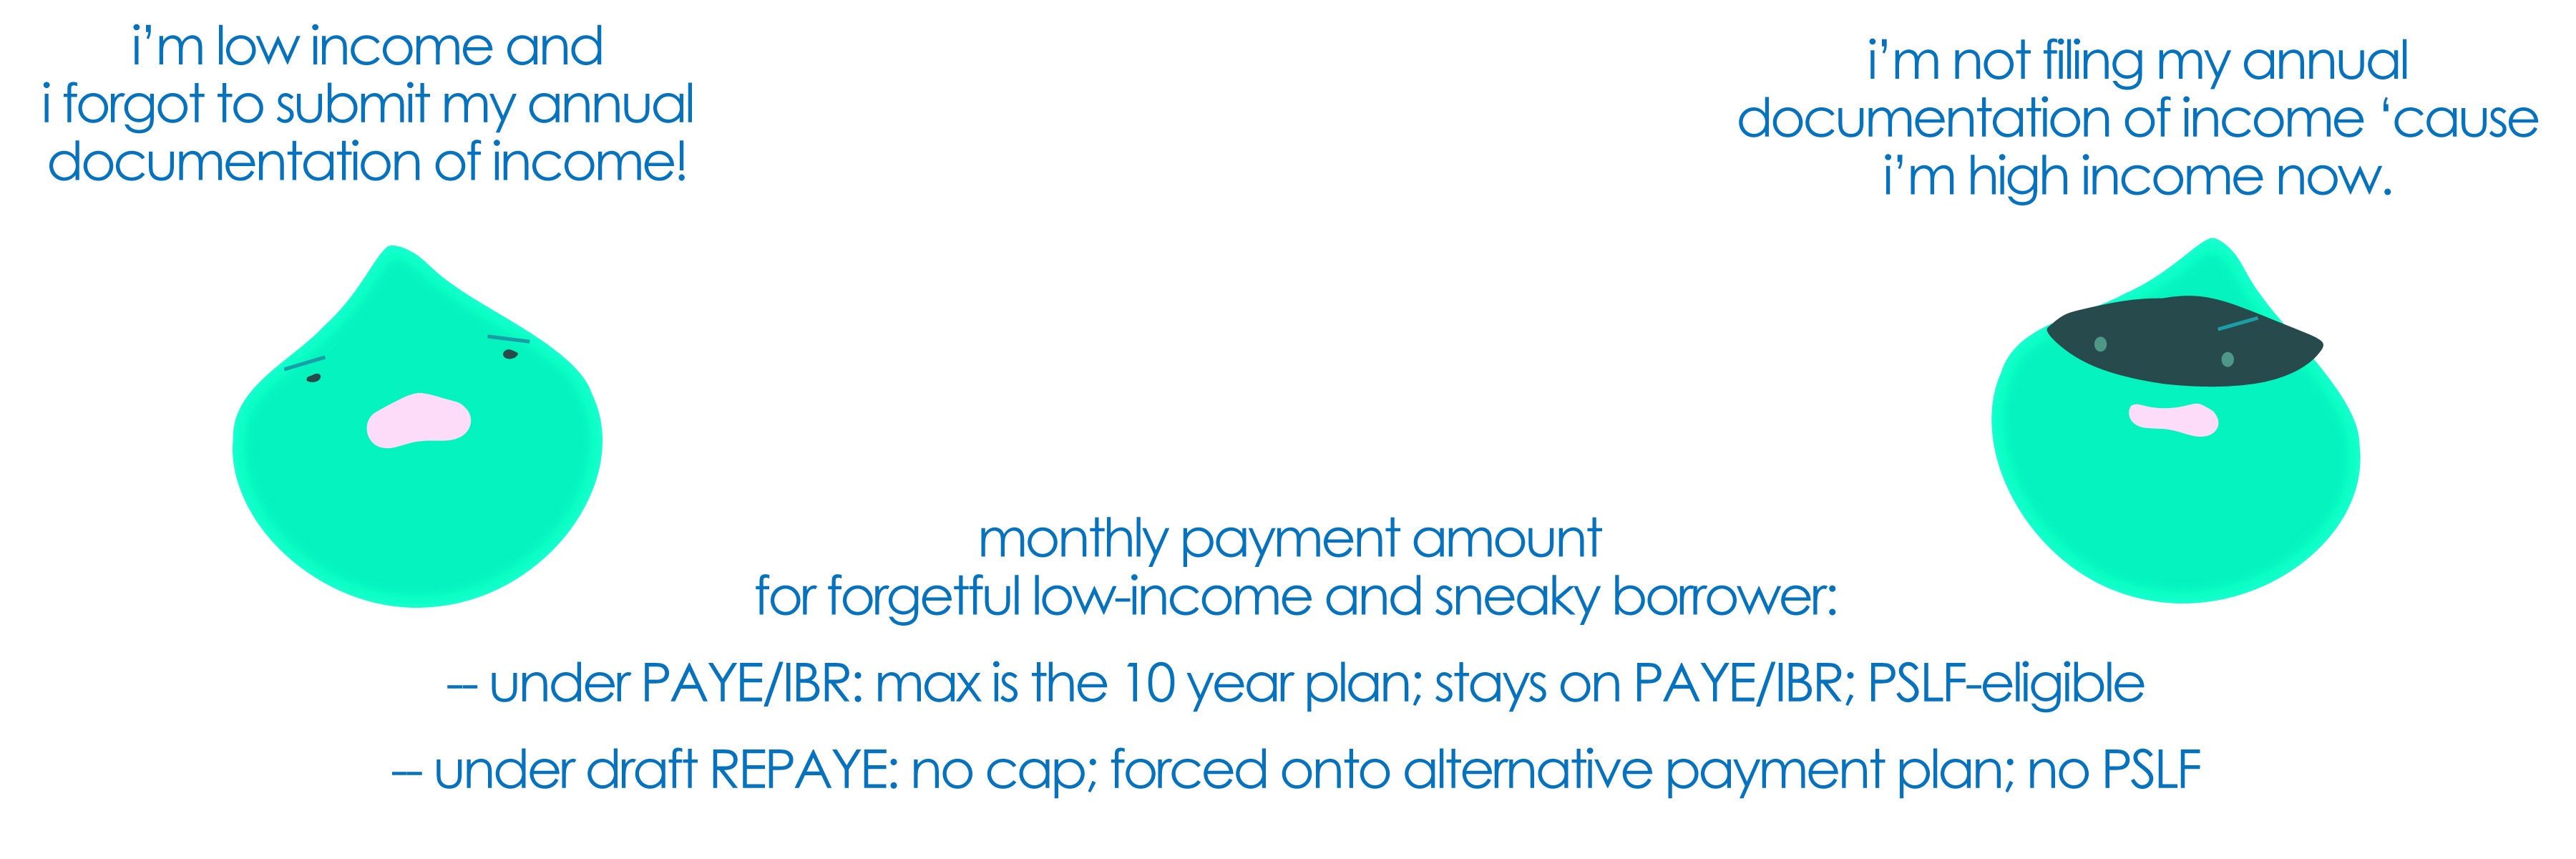 Draft Rules For The New Repayment Plan Repaye Effect On